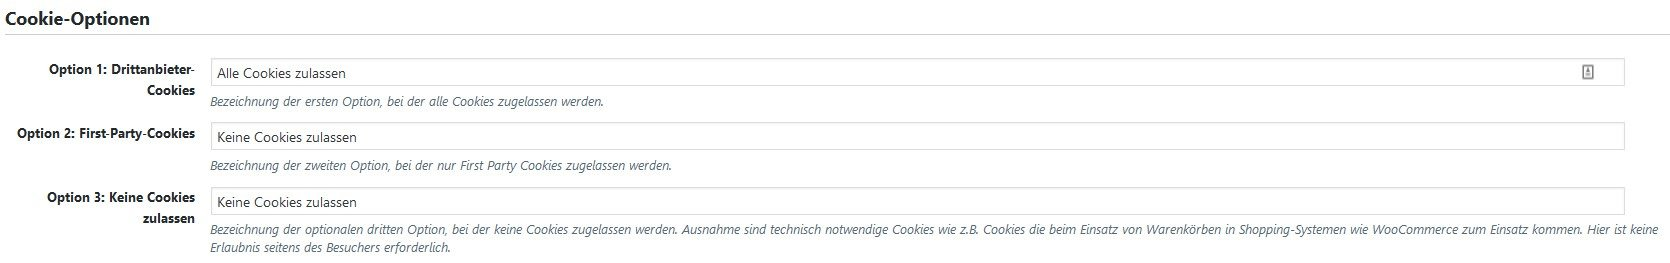 Texte für die Cookie-Optionen in Borlabs Cookie